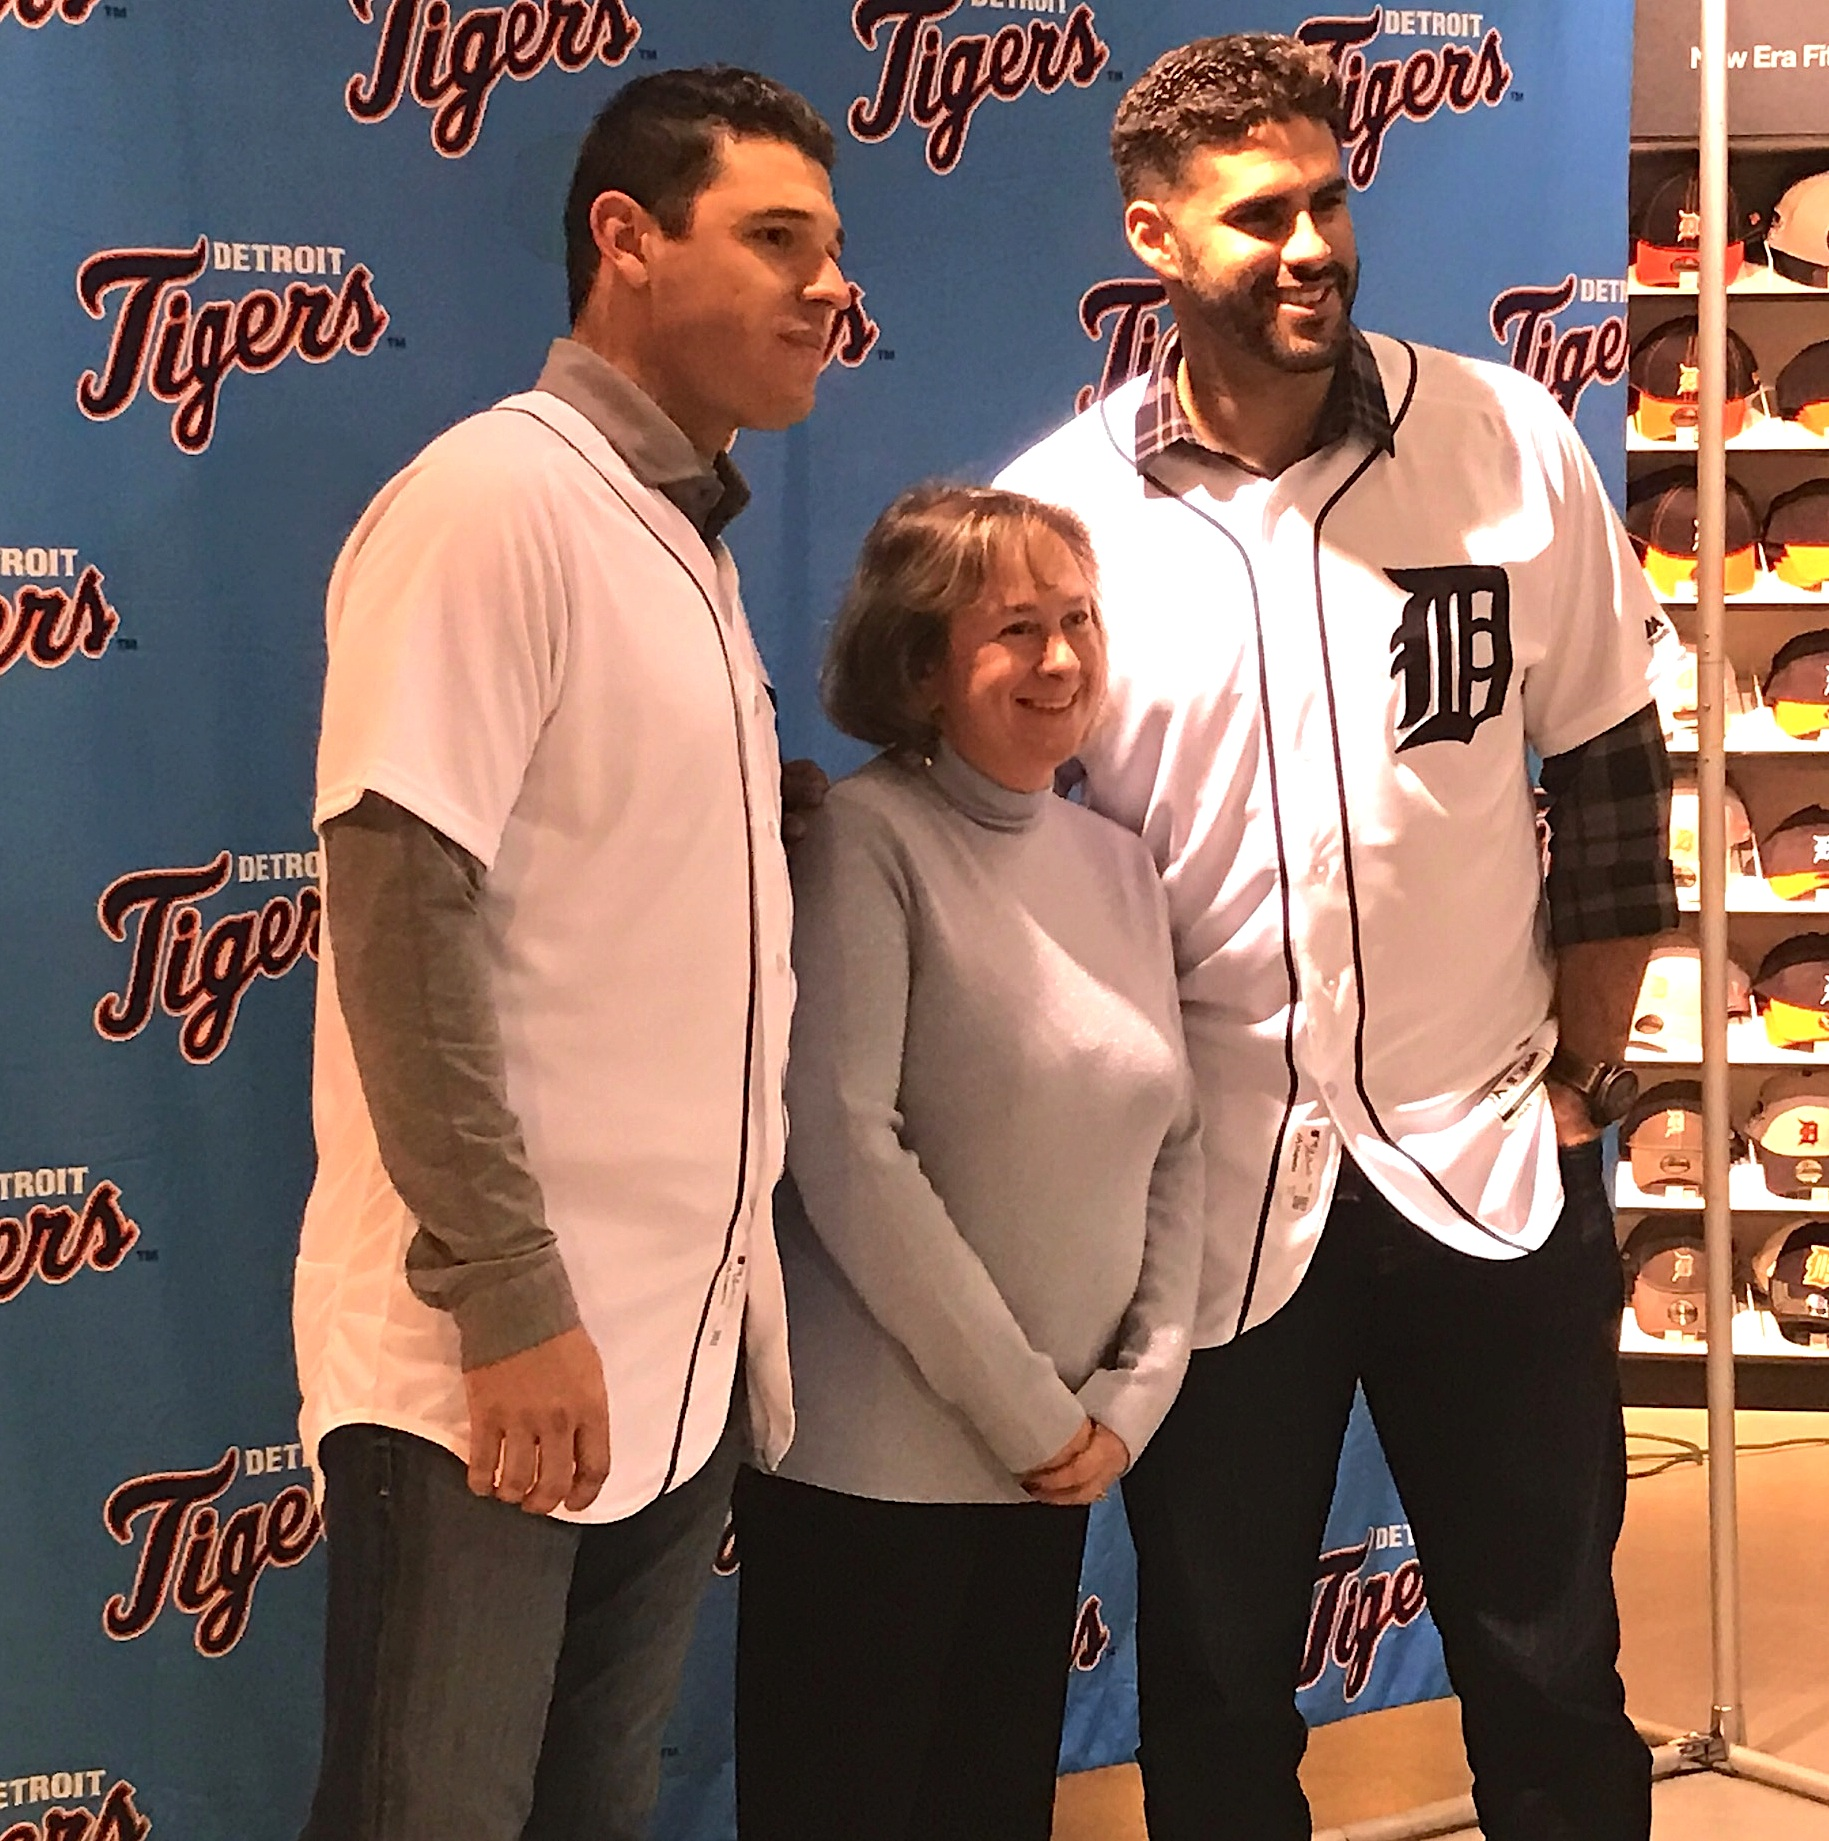 Home Goods Farmington Hills Mi Tigers Meet The Fans In Annual Caravan Ou News Bureau